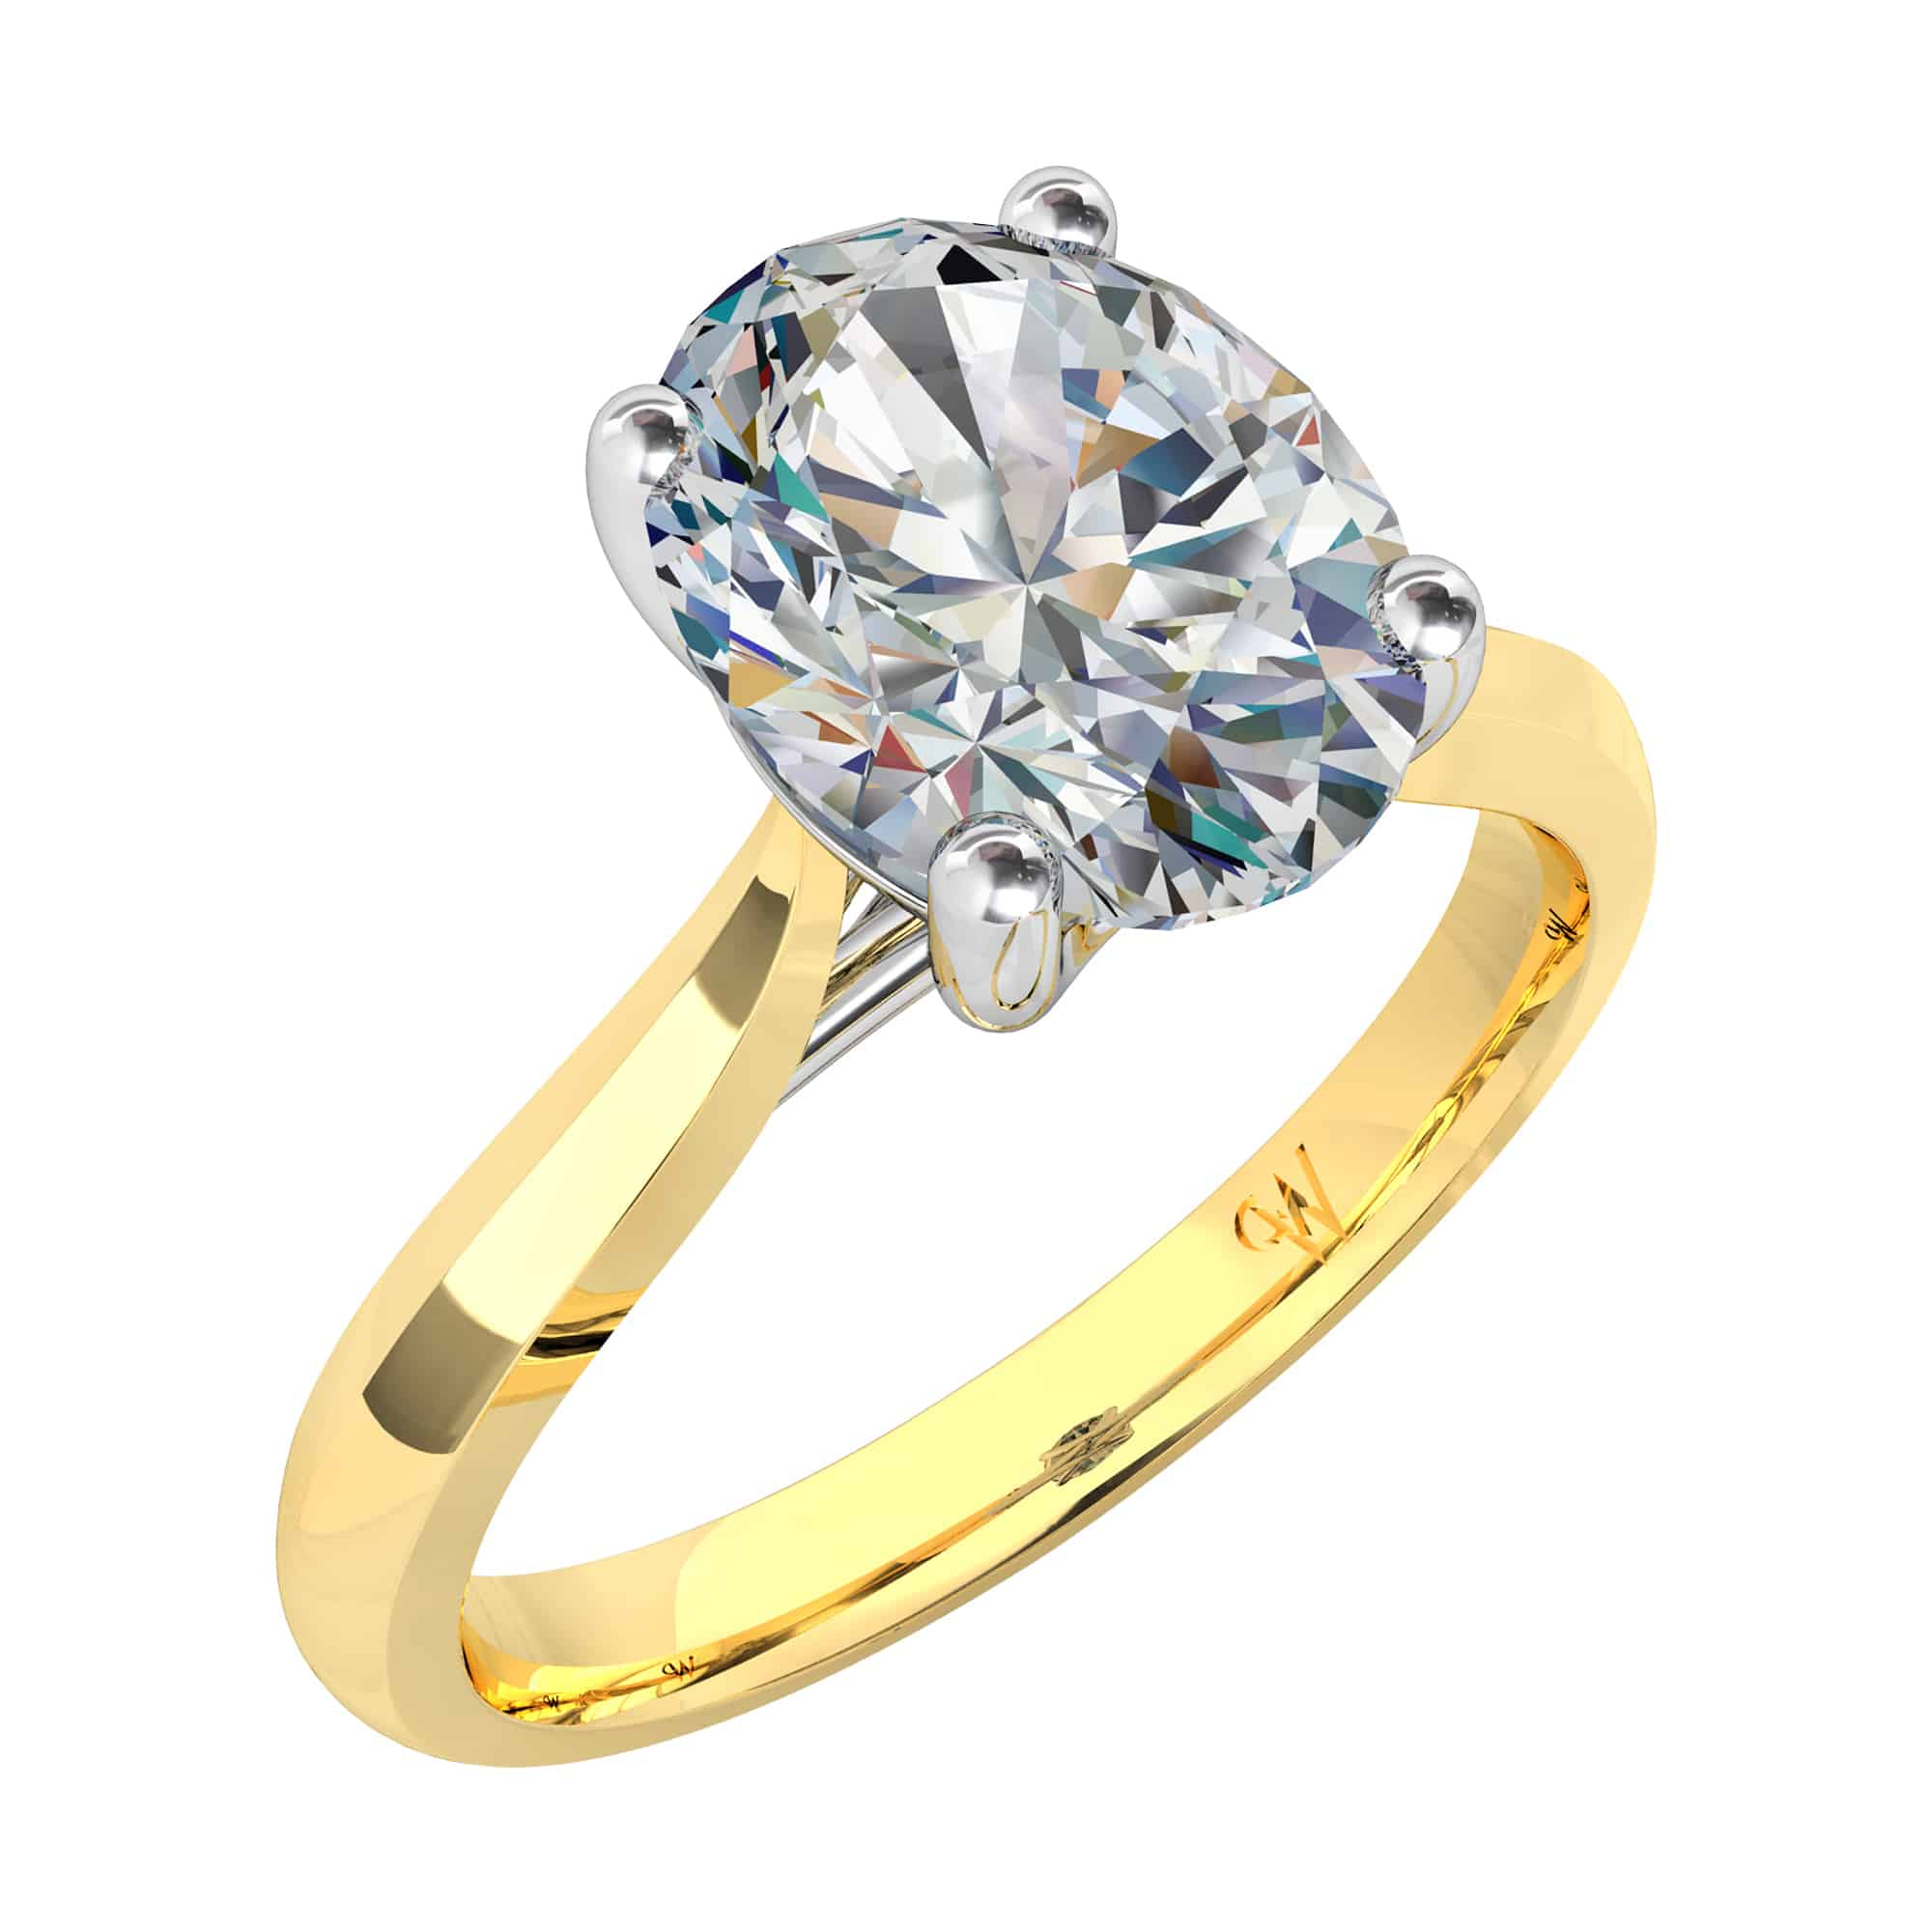 diamond s atlanta like may also products pave engagement oval with solitaire you cut platinum ring